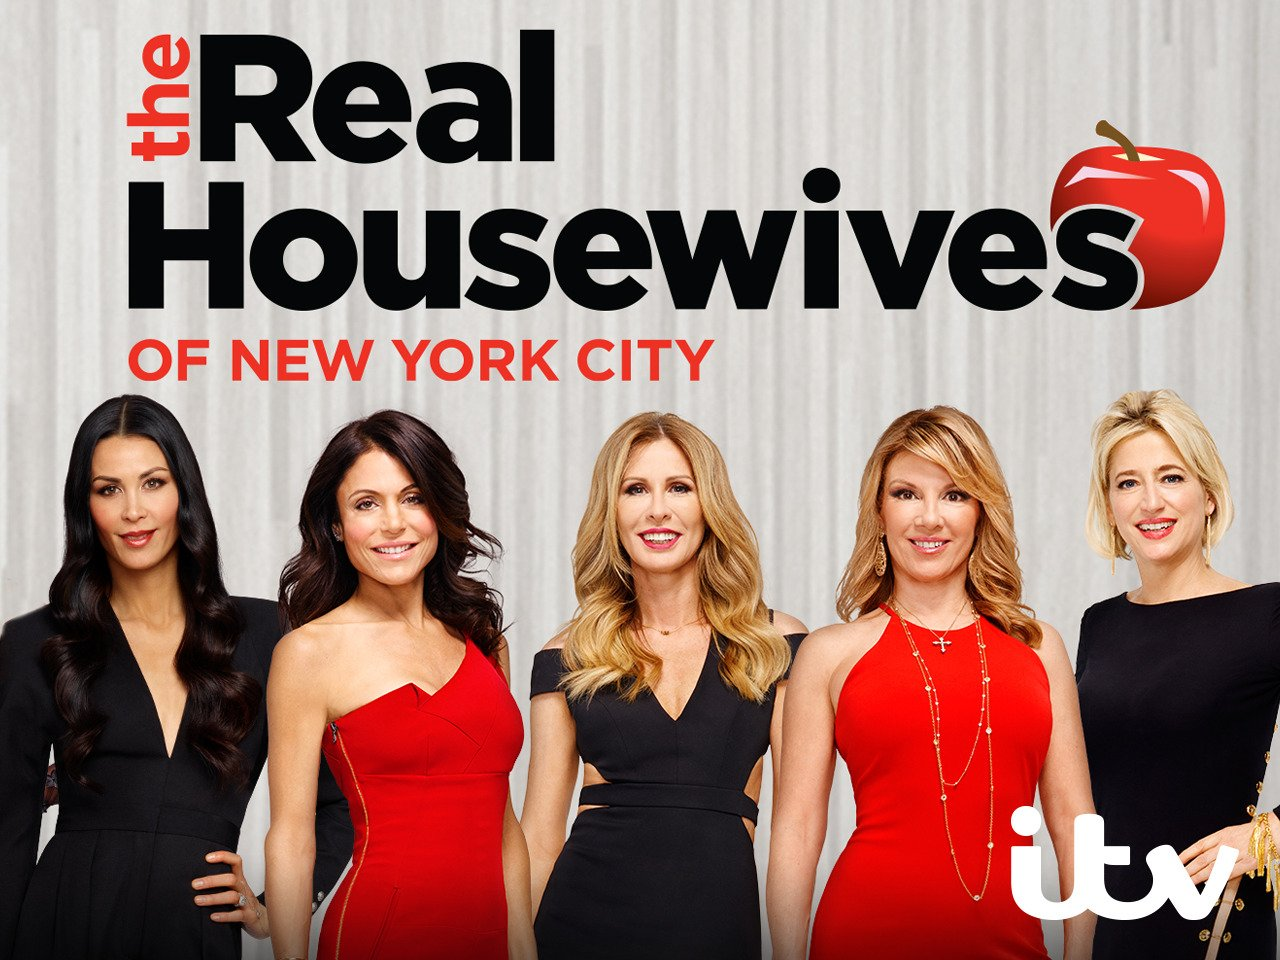 Amazon.co.uk: Watch The Real Housewives of New York City Season 8 | Prime Video